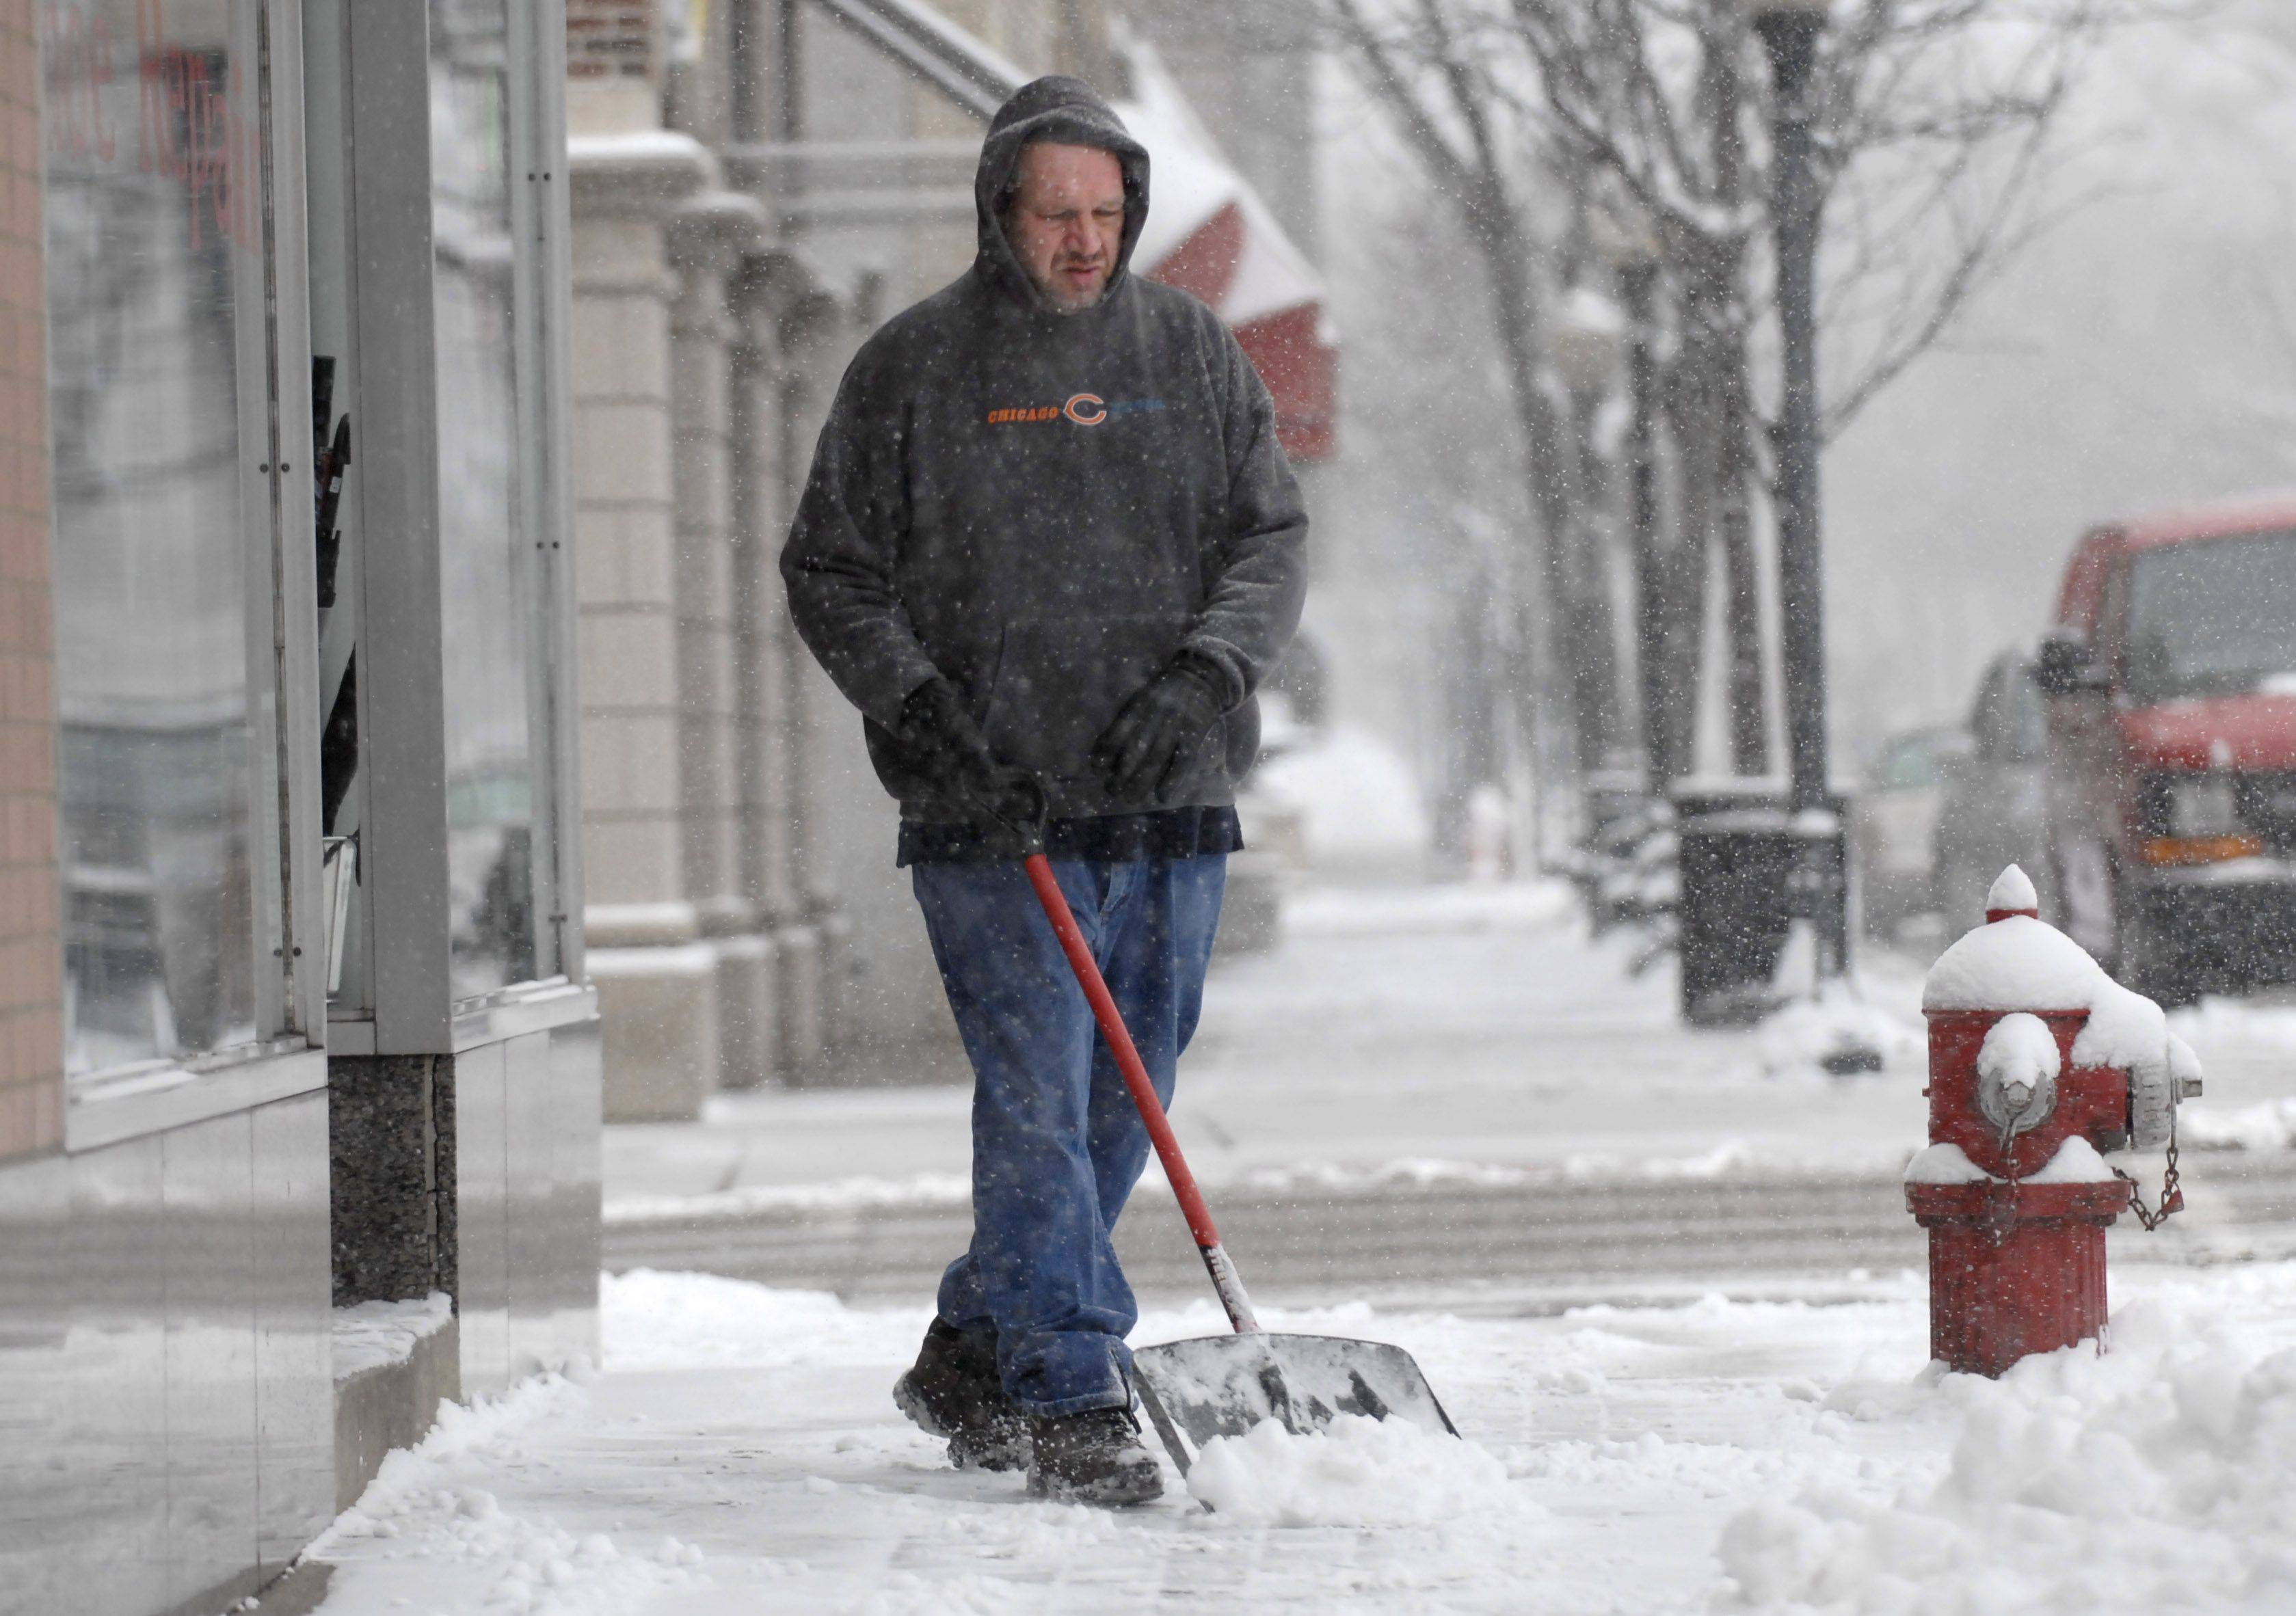 Kenny Callahan, owner of First Arlington Barber Shop keeps his sidewalk clear on Campbell Street after a few inches of fluffy snow fell Tuesday morning in Arlington Heights.